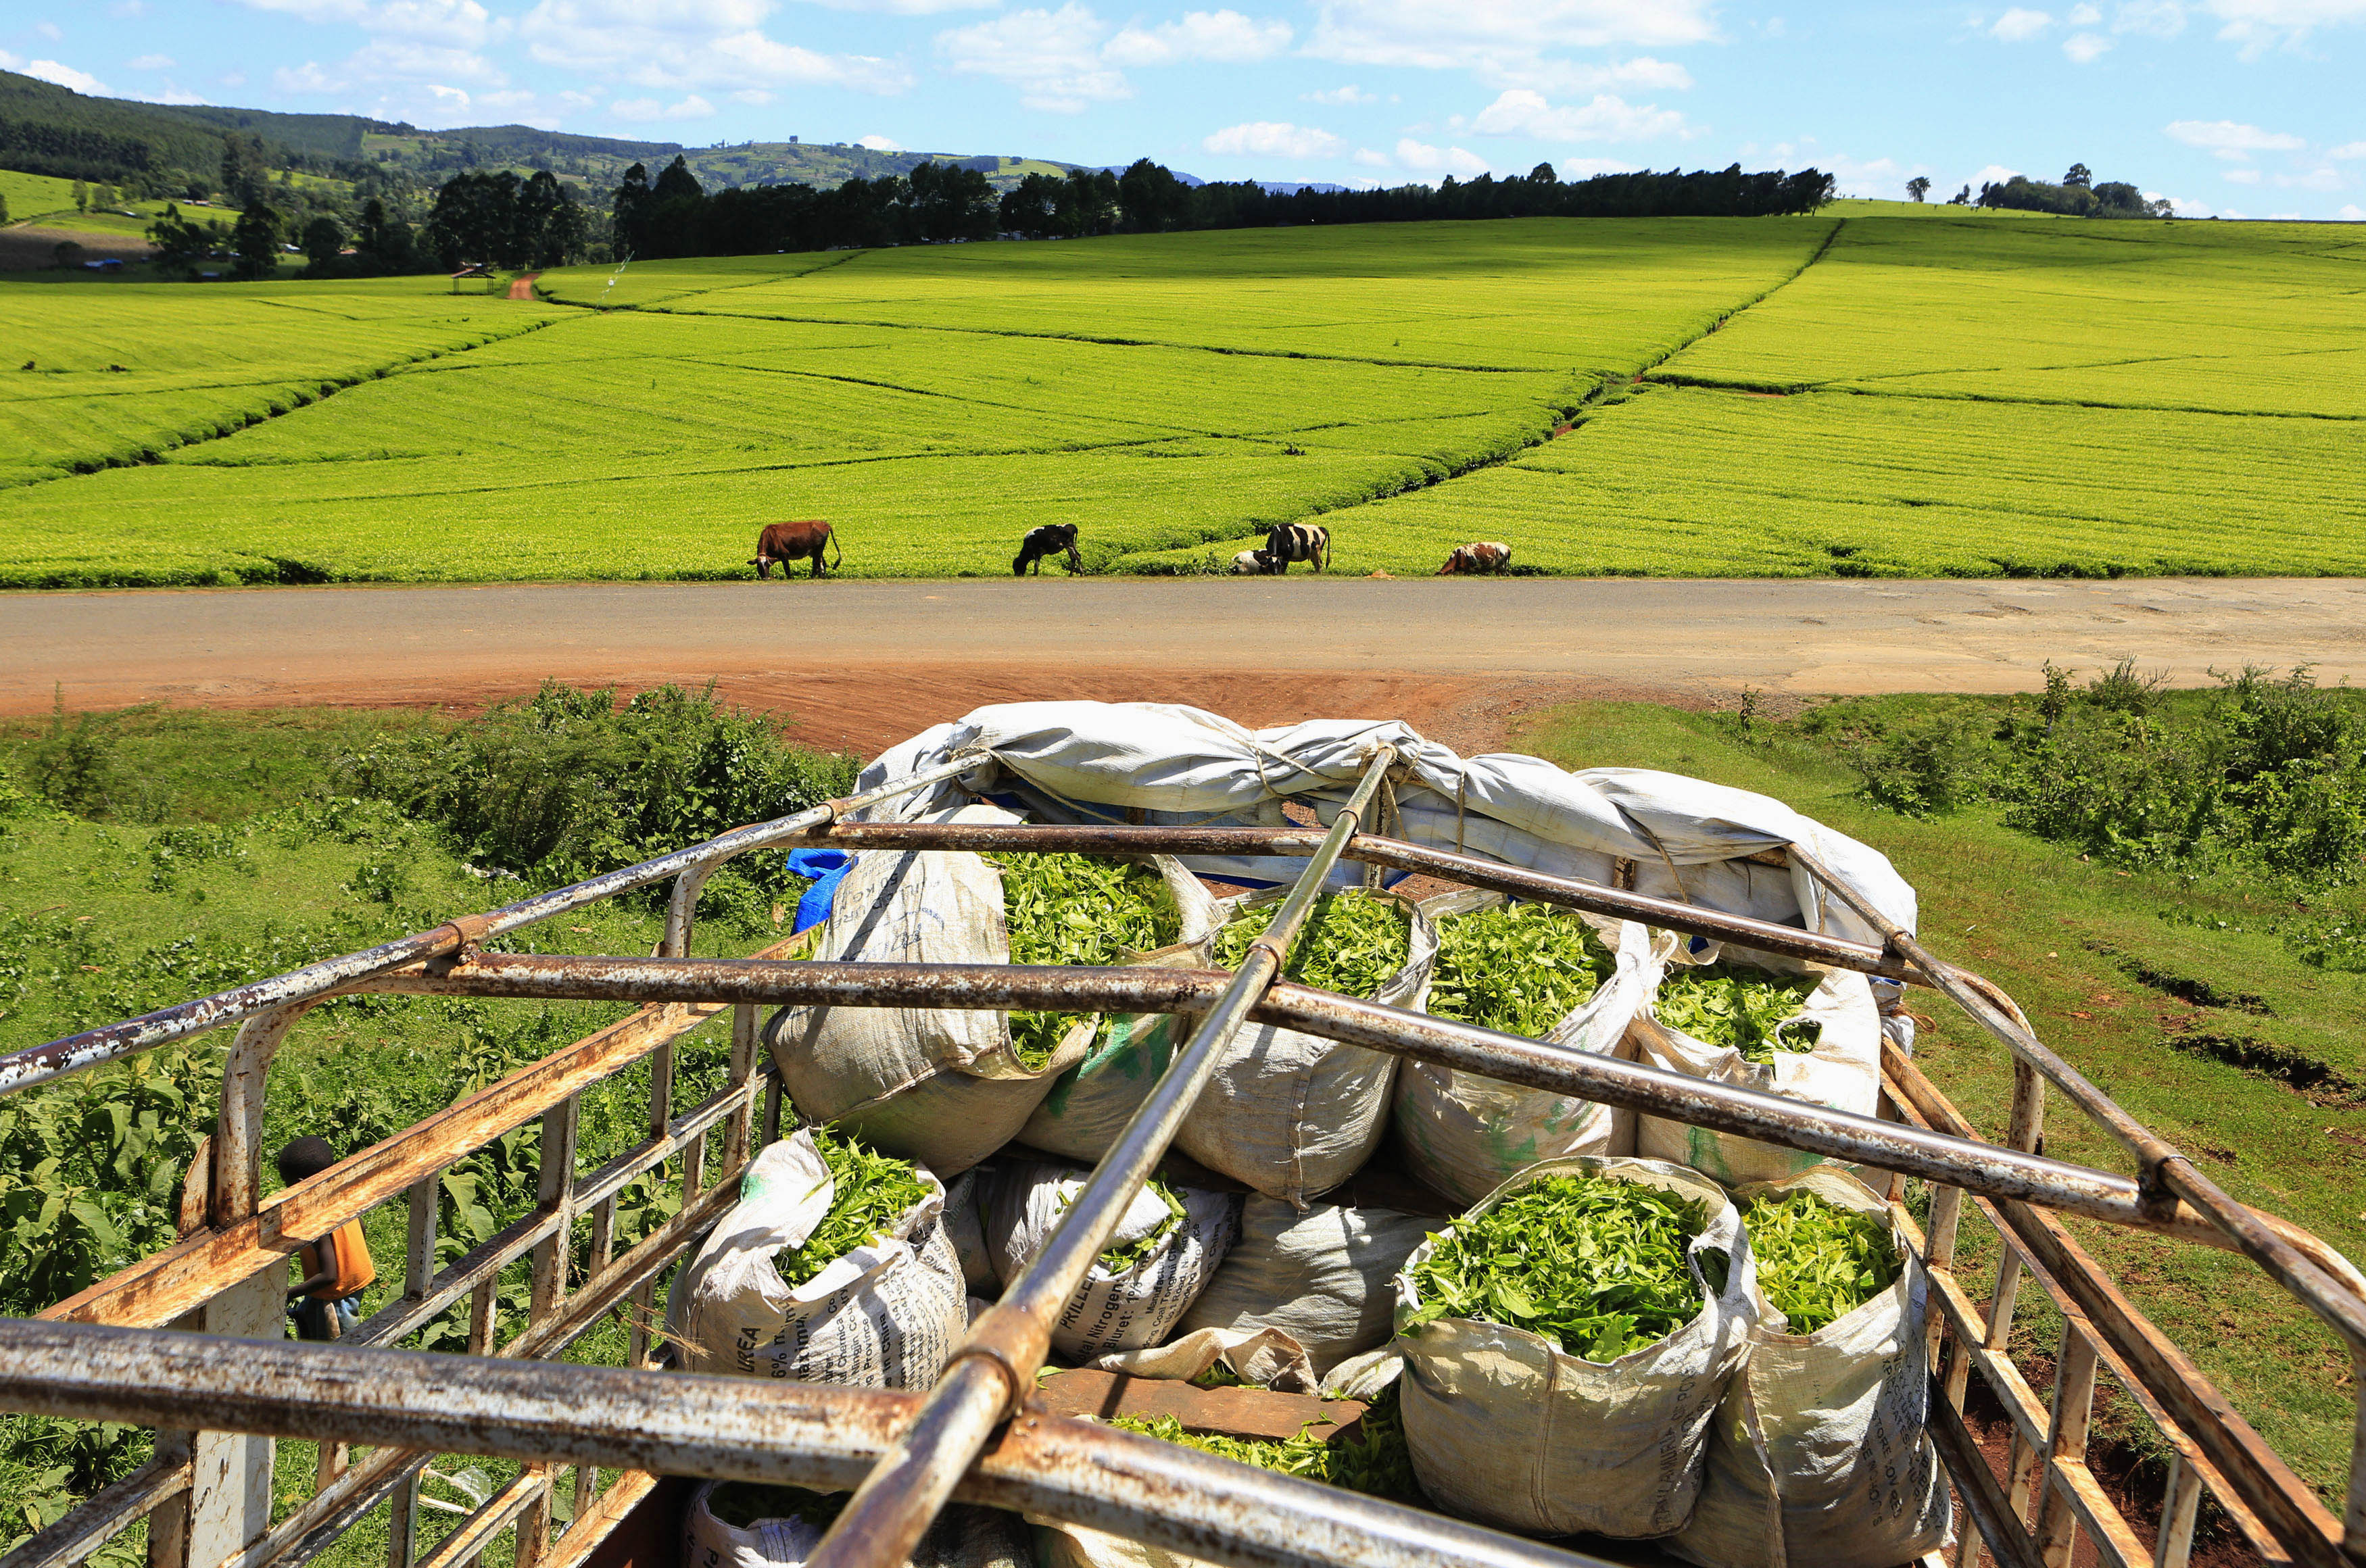 FILE- DATE IMPORTED: November 16, 2014 A truck is loaded with bags of tea leaves at a plantation in Nandi Hills, in Kenya's highlands region west of capital Nairobi, Nov. 5, 2014.